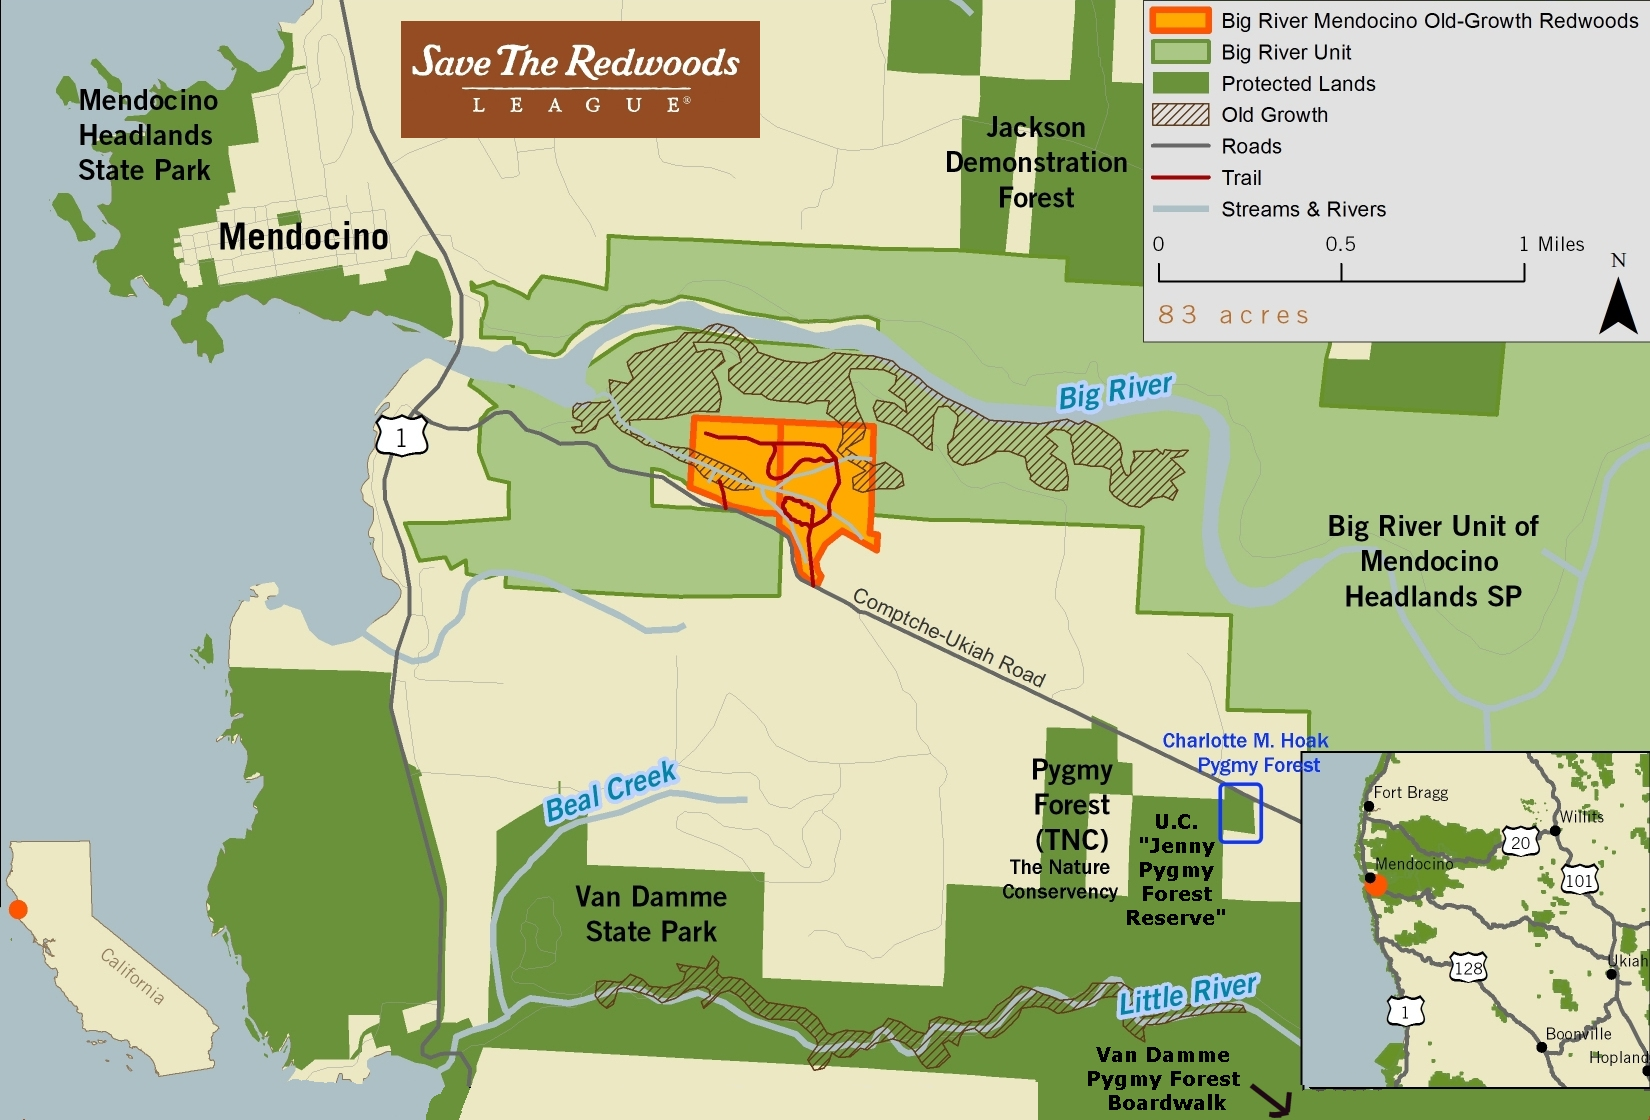 Save The Redwoods League Map of Big River Headlands